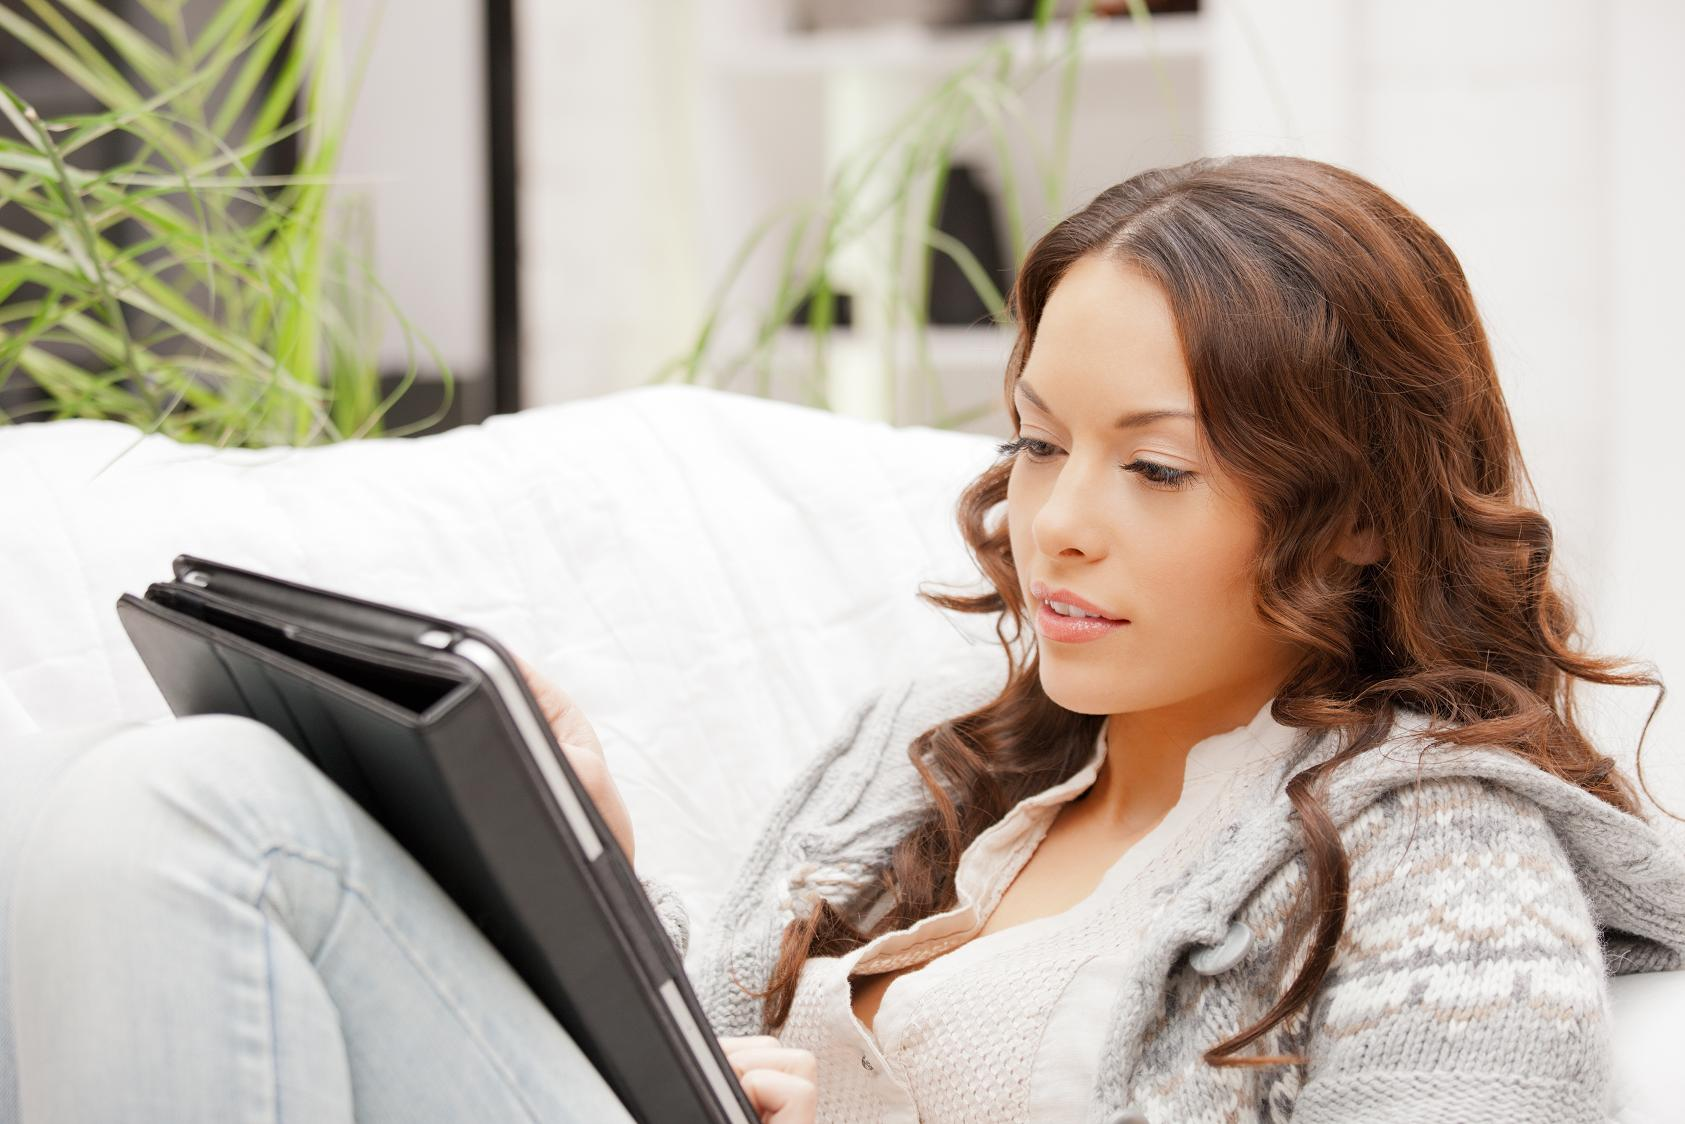 young woman reading from tablet computer